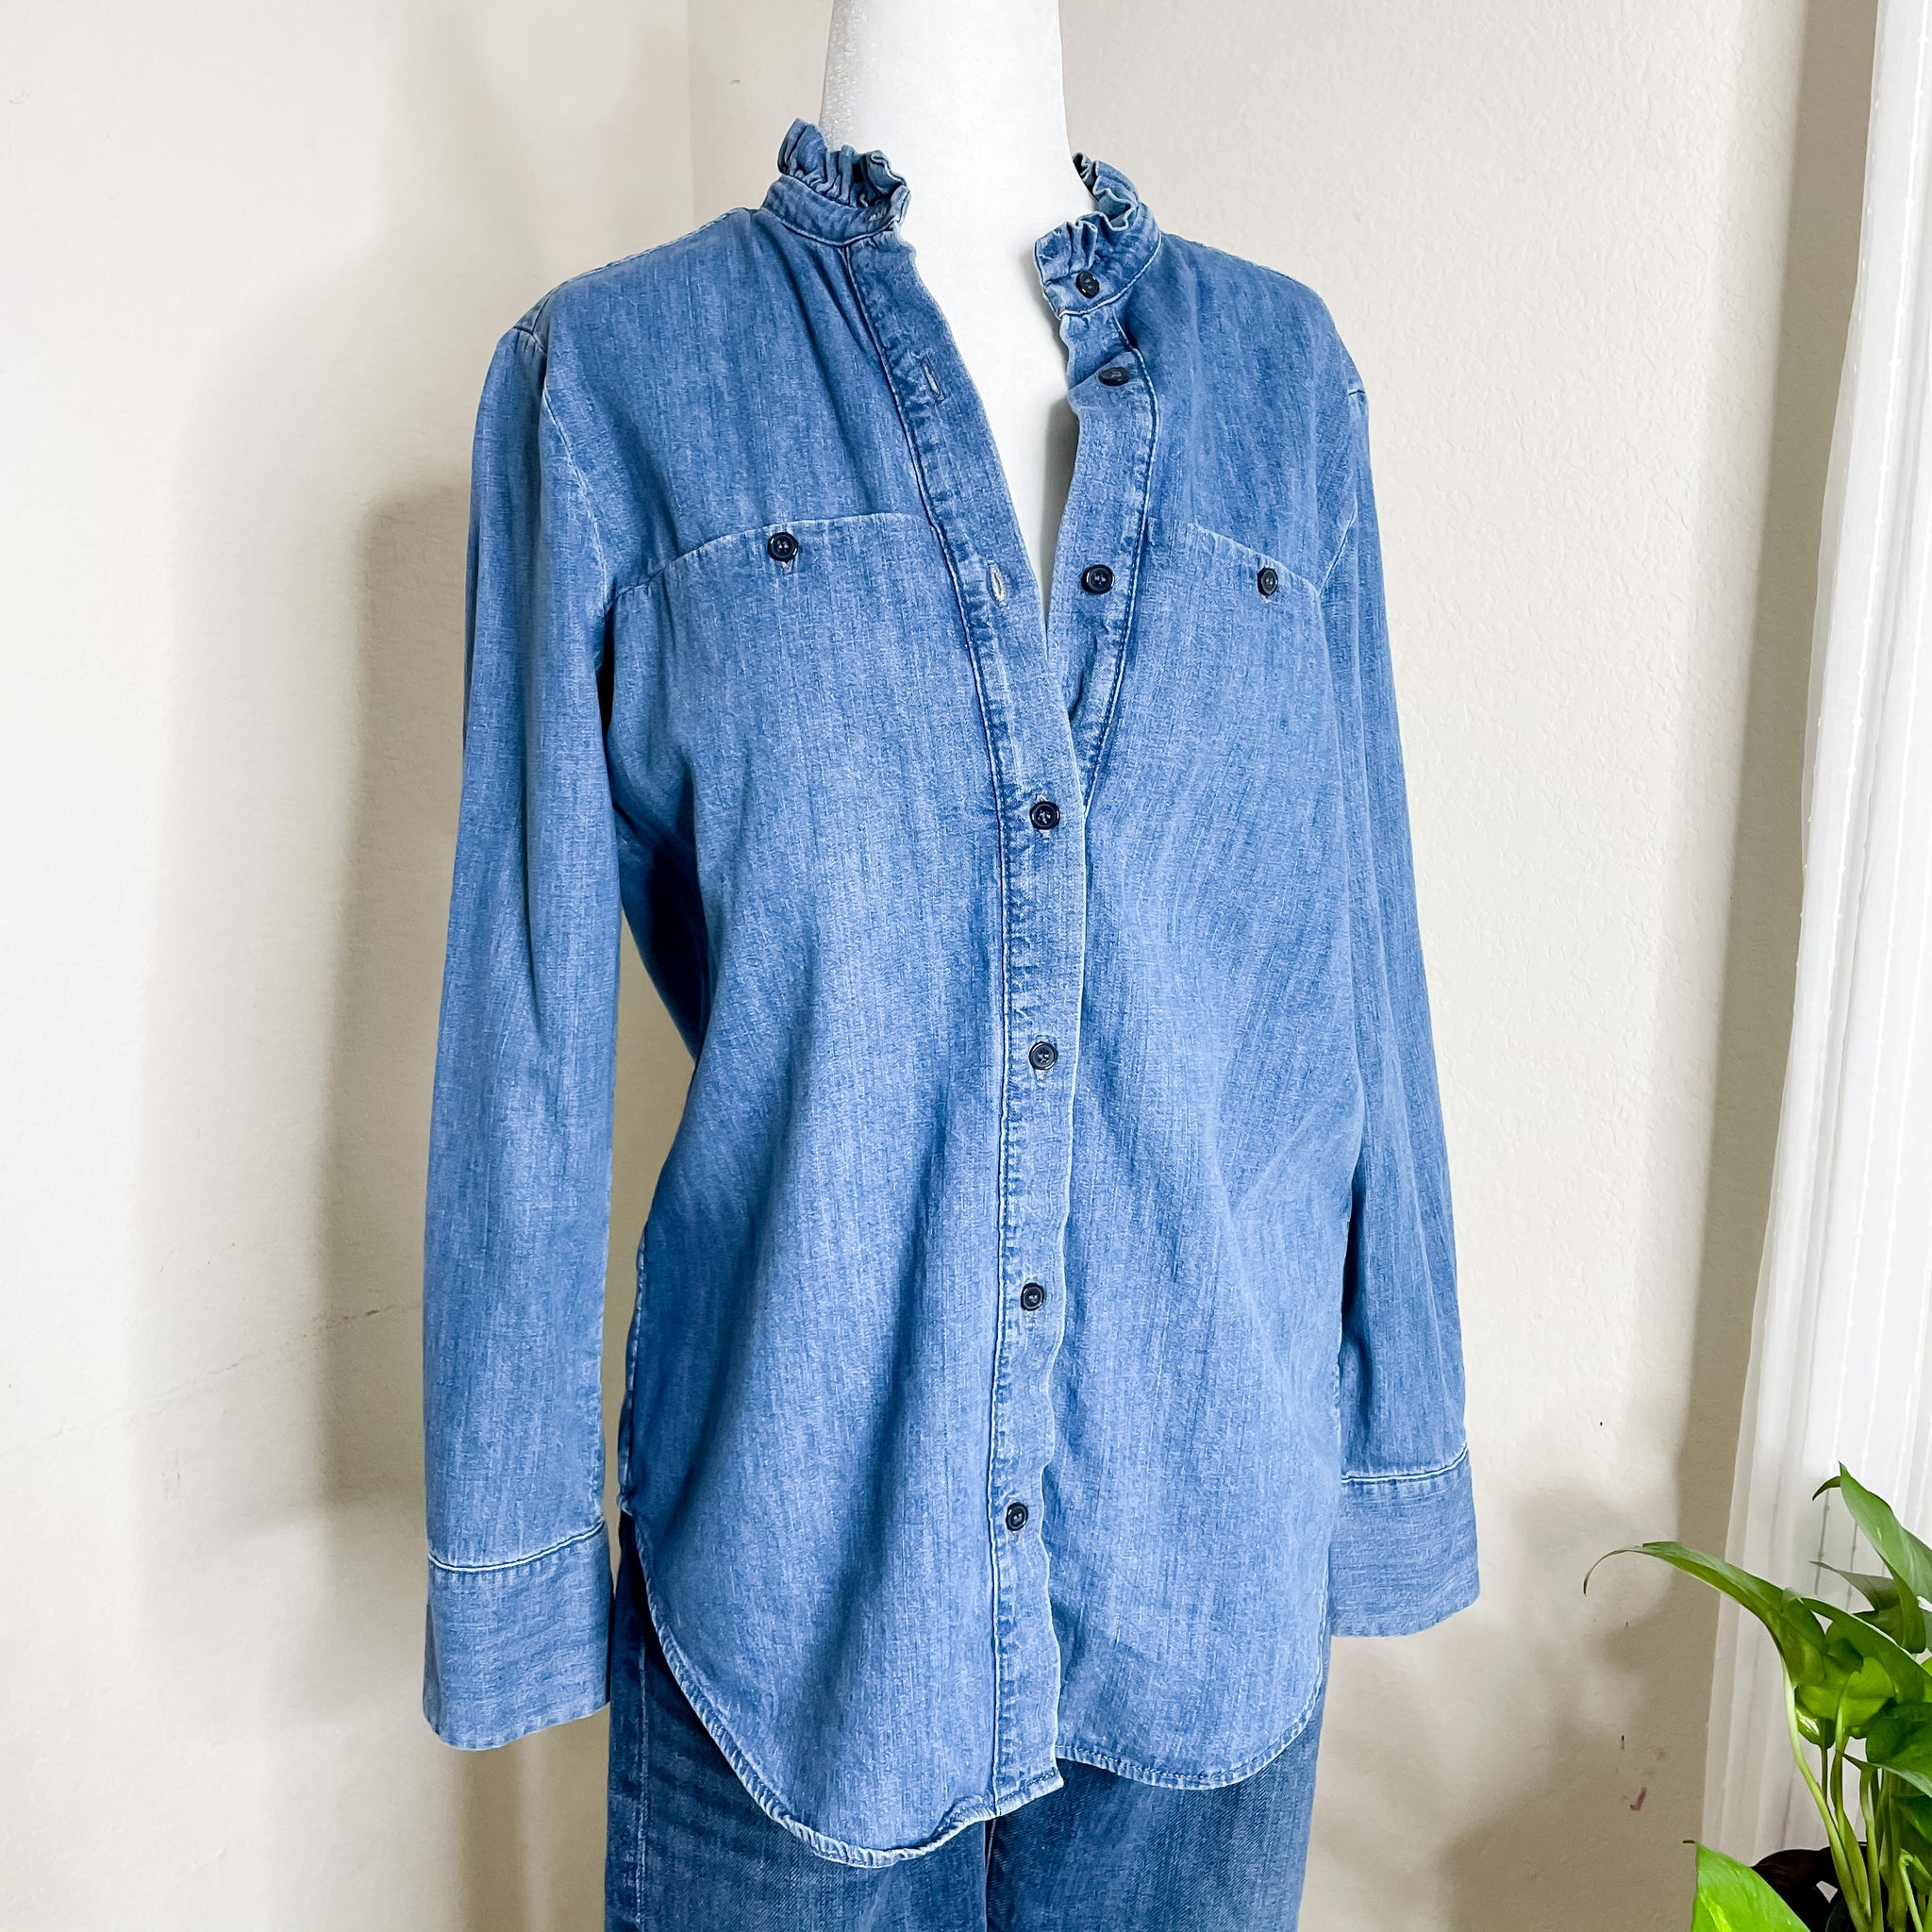 & Other Stories Ruffle Collar Chambray Top 4